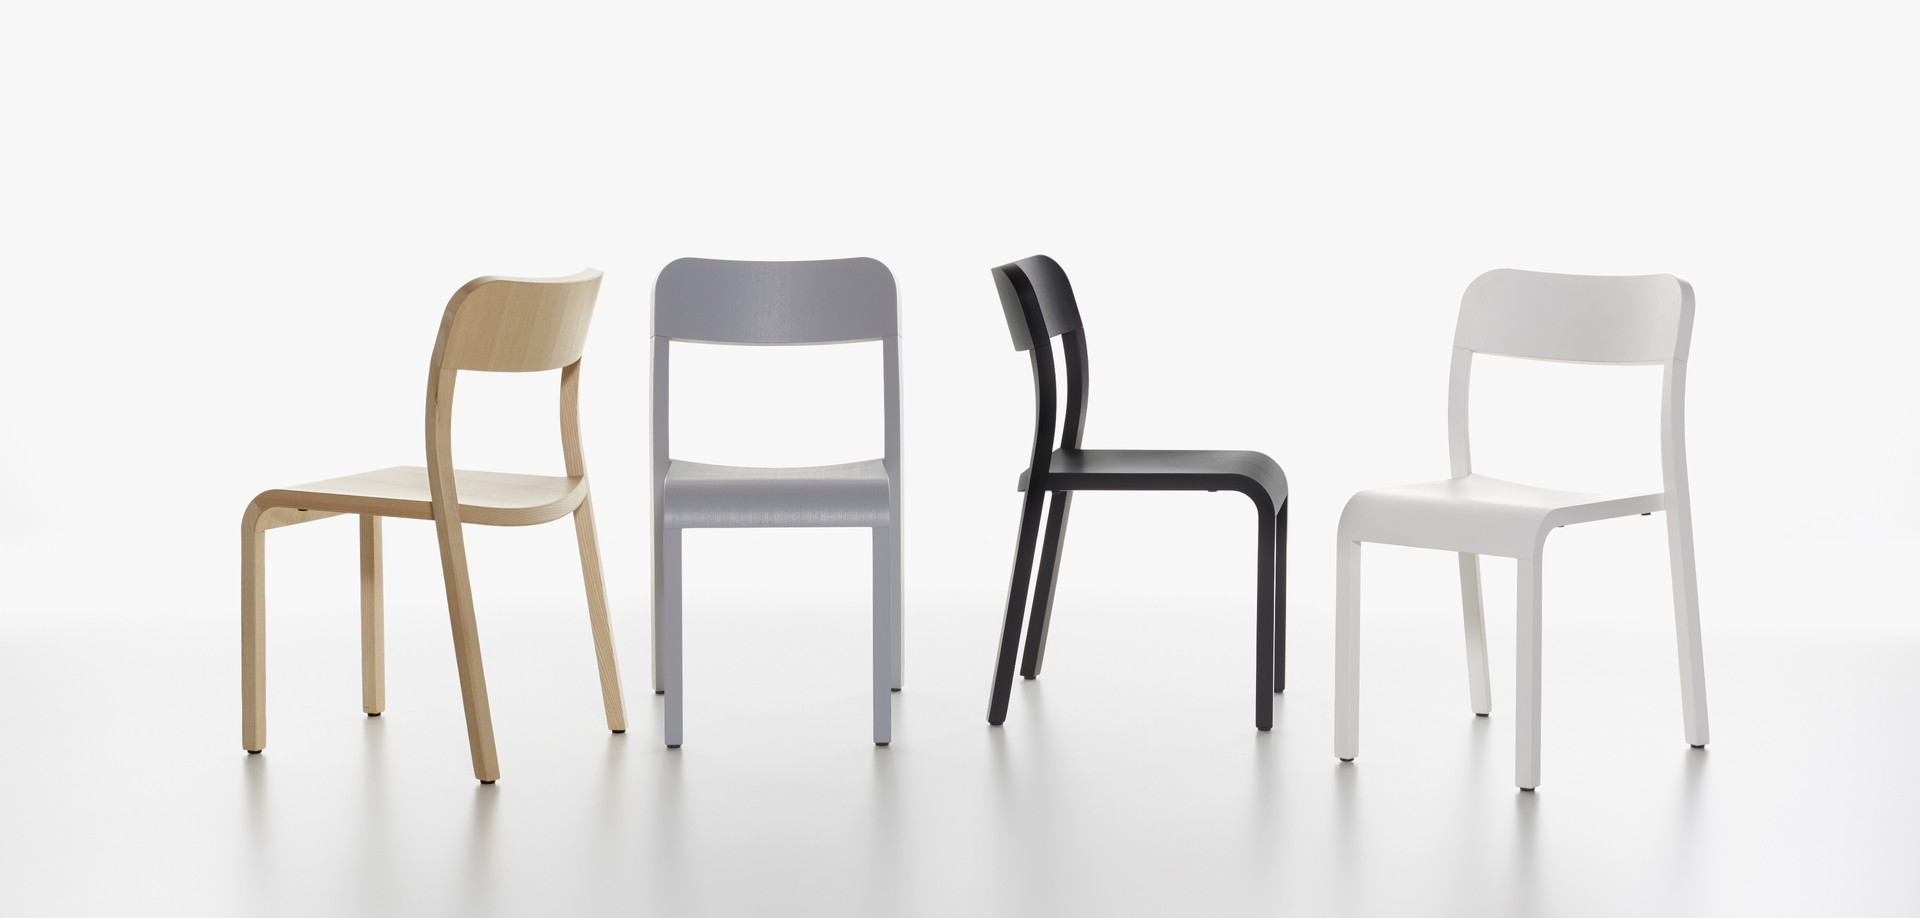 Plank - BLOCCO chair in the colors ash natural, grey, black and white.